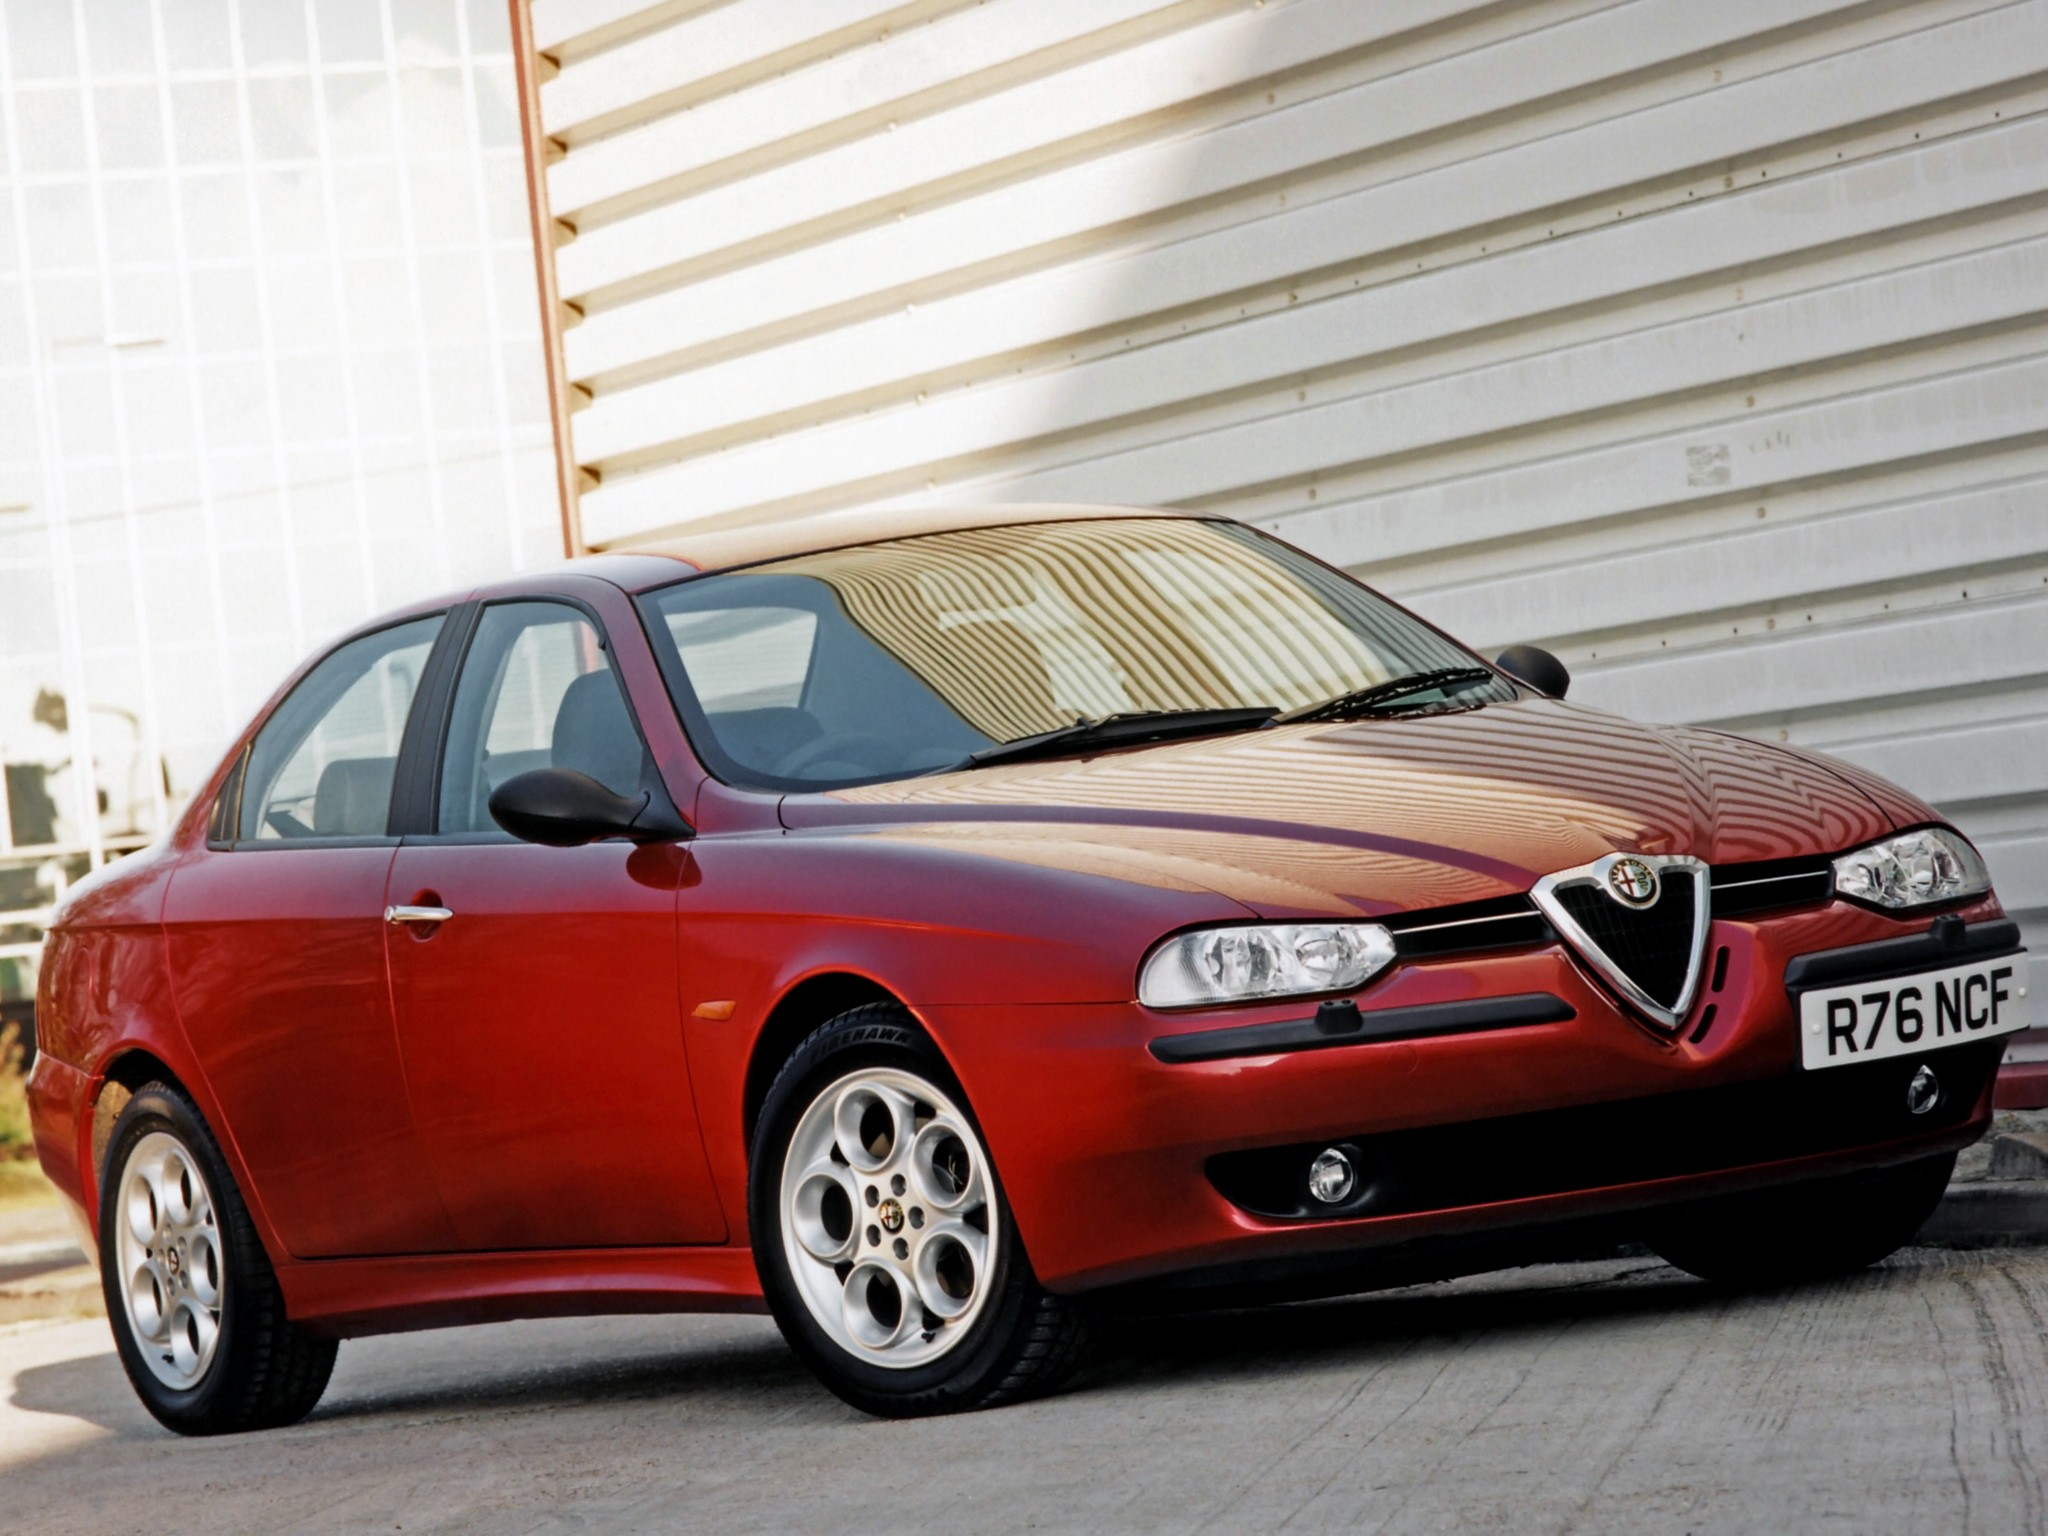 alfa romeo 156 specs 1997 1998 1999 2000 2001 2002 2003 autoevolution. Black Bedroom Furniture Sets. Home Design Ideas